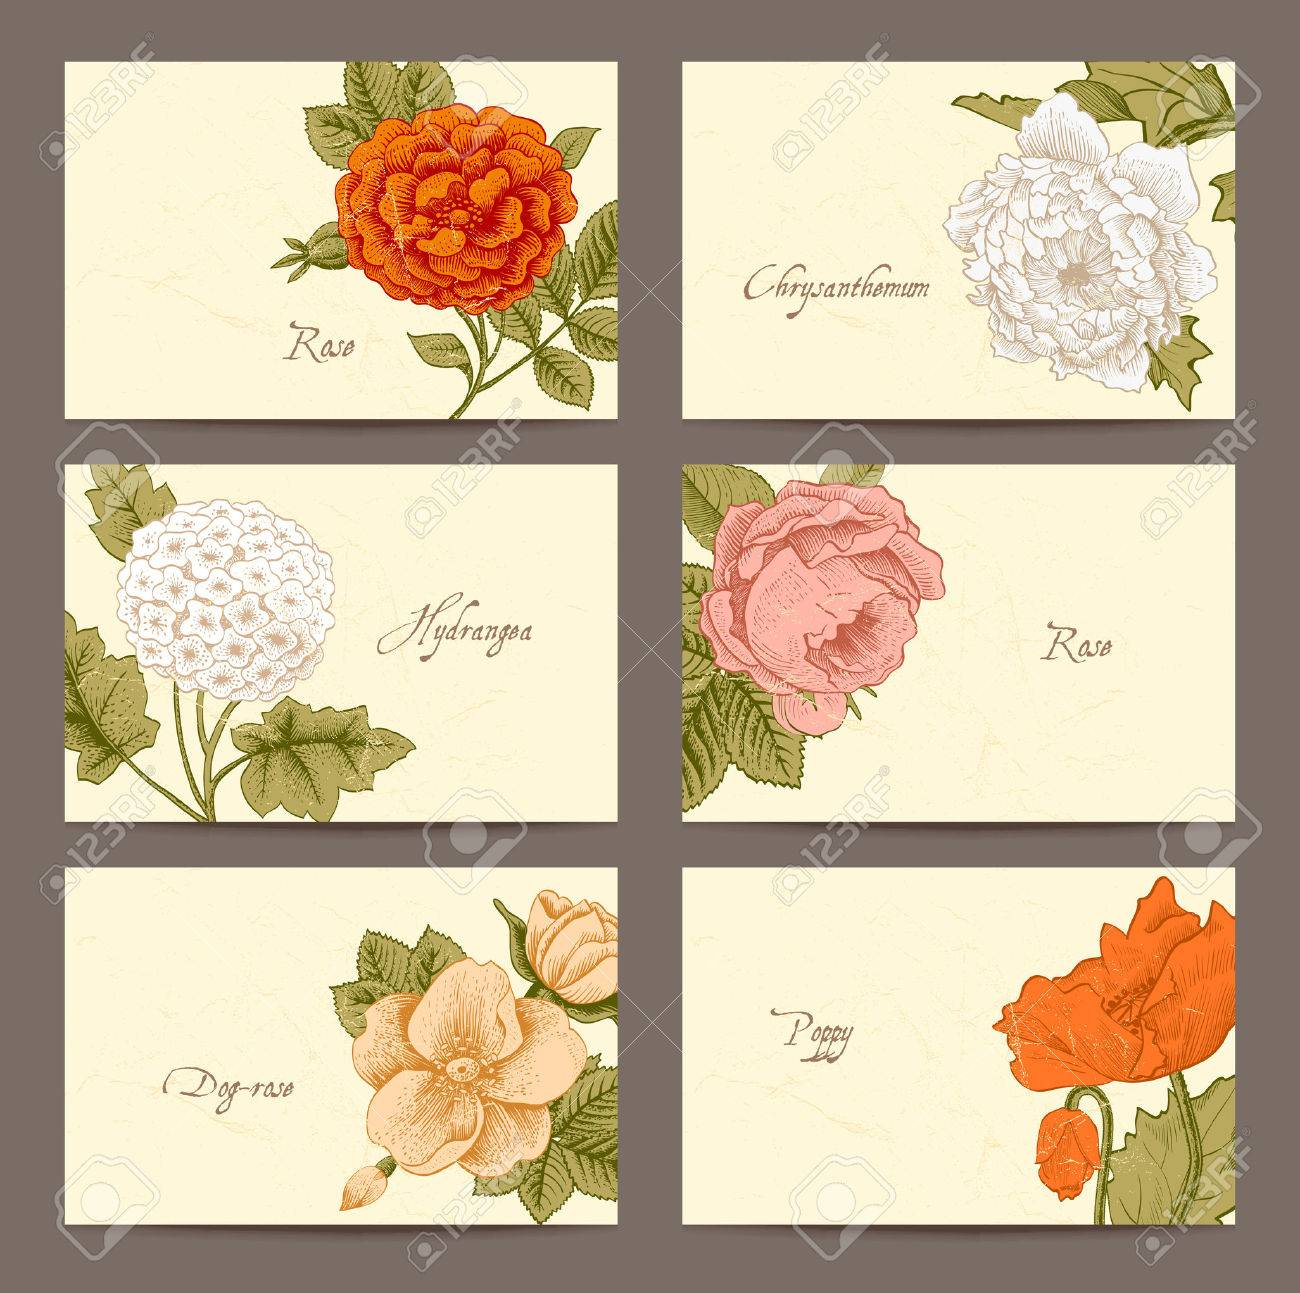 Set Of Vintage Floral Horizontal Business Cards Royalty Free ...